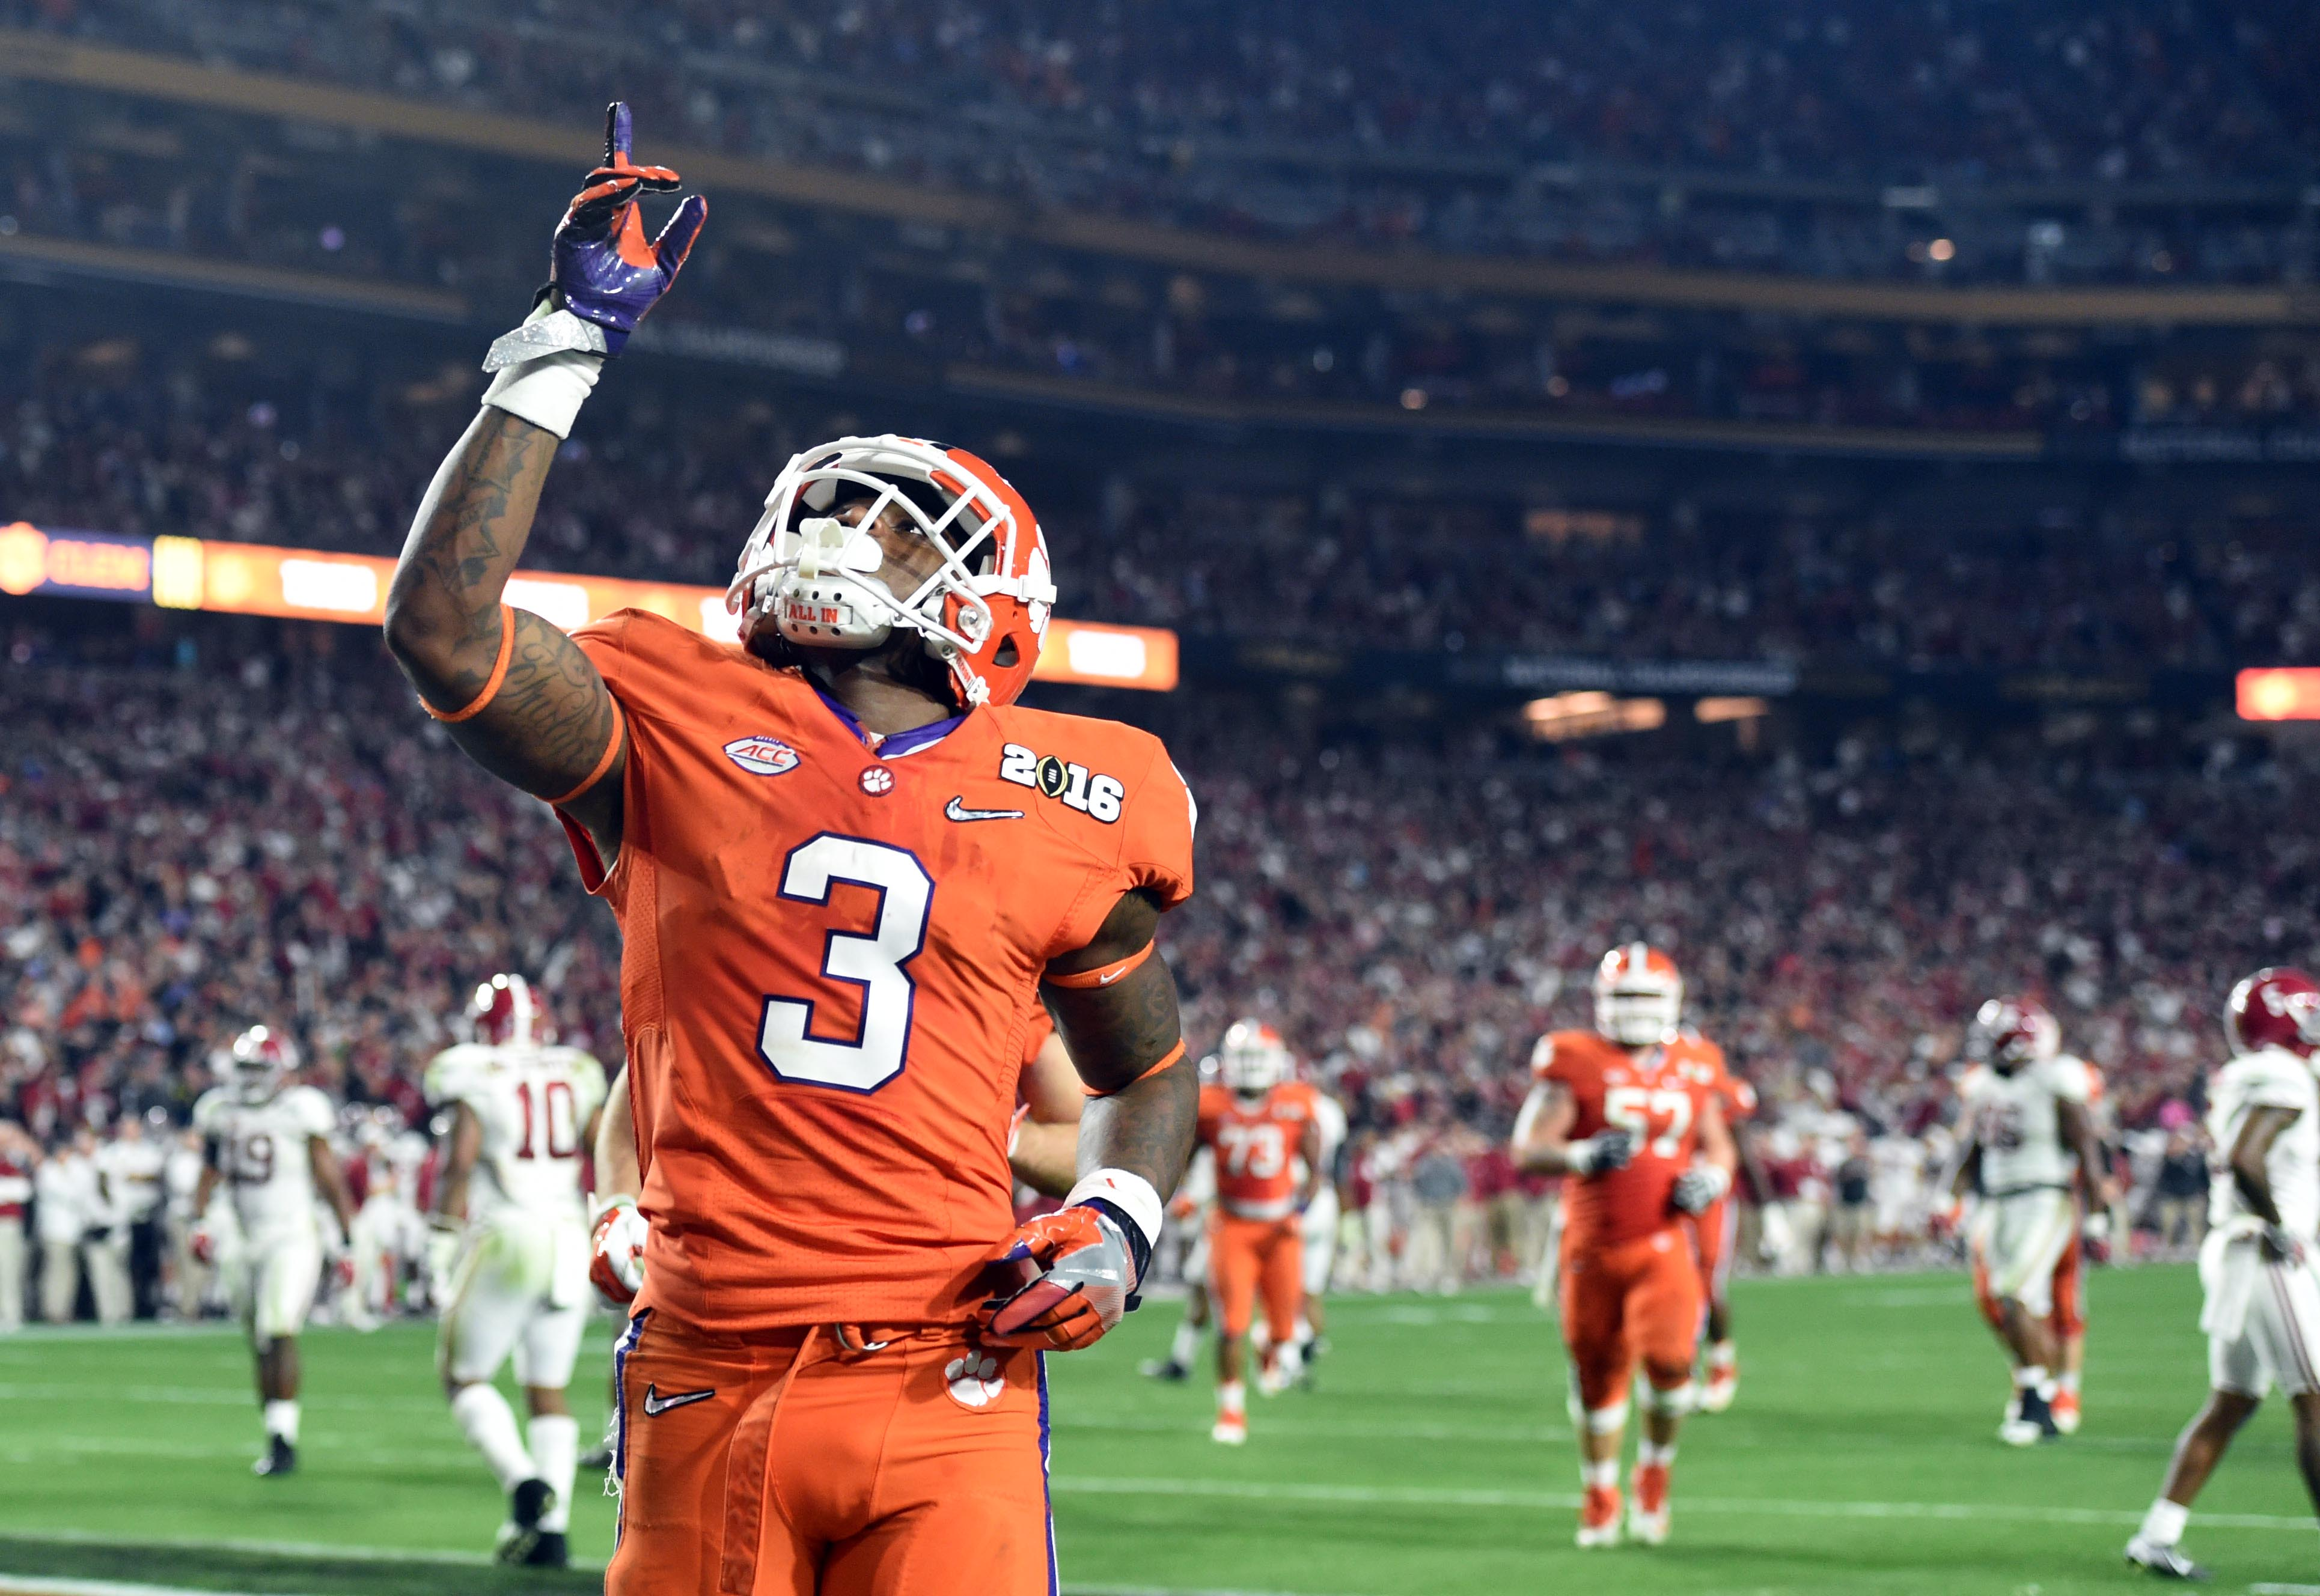 Artavis Scott should once again play a large role in the Clemson return game.